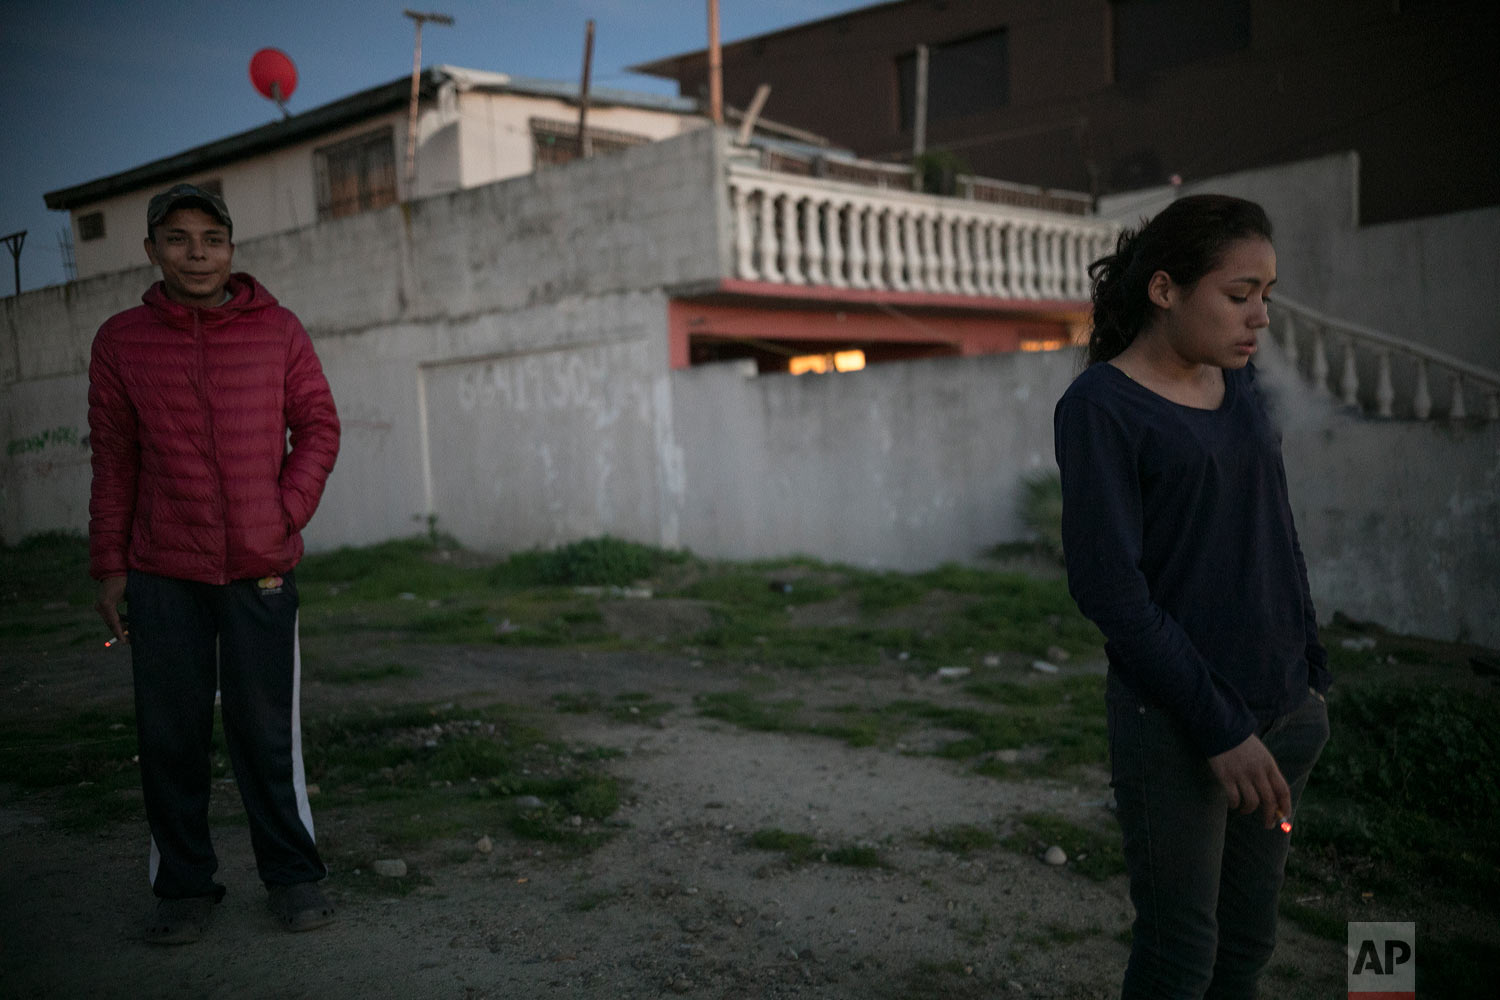 Seventeen-year-old Honduran migrant Josue Mejia Lucero, left, smokes along with his girlfriend's sister Xiomara Henriquez Ayala, 13, outside the Agape World Mission shelter in Tijuana, Mexico, Feb. 8, 2019. (AP Photo/Emilio Espejel)